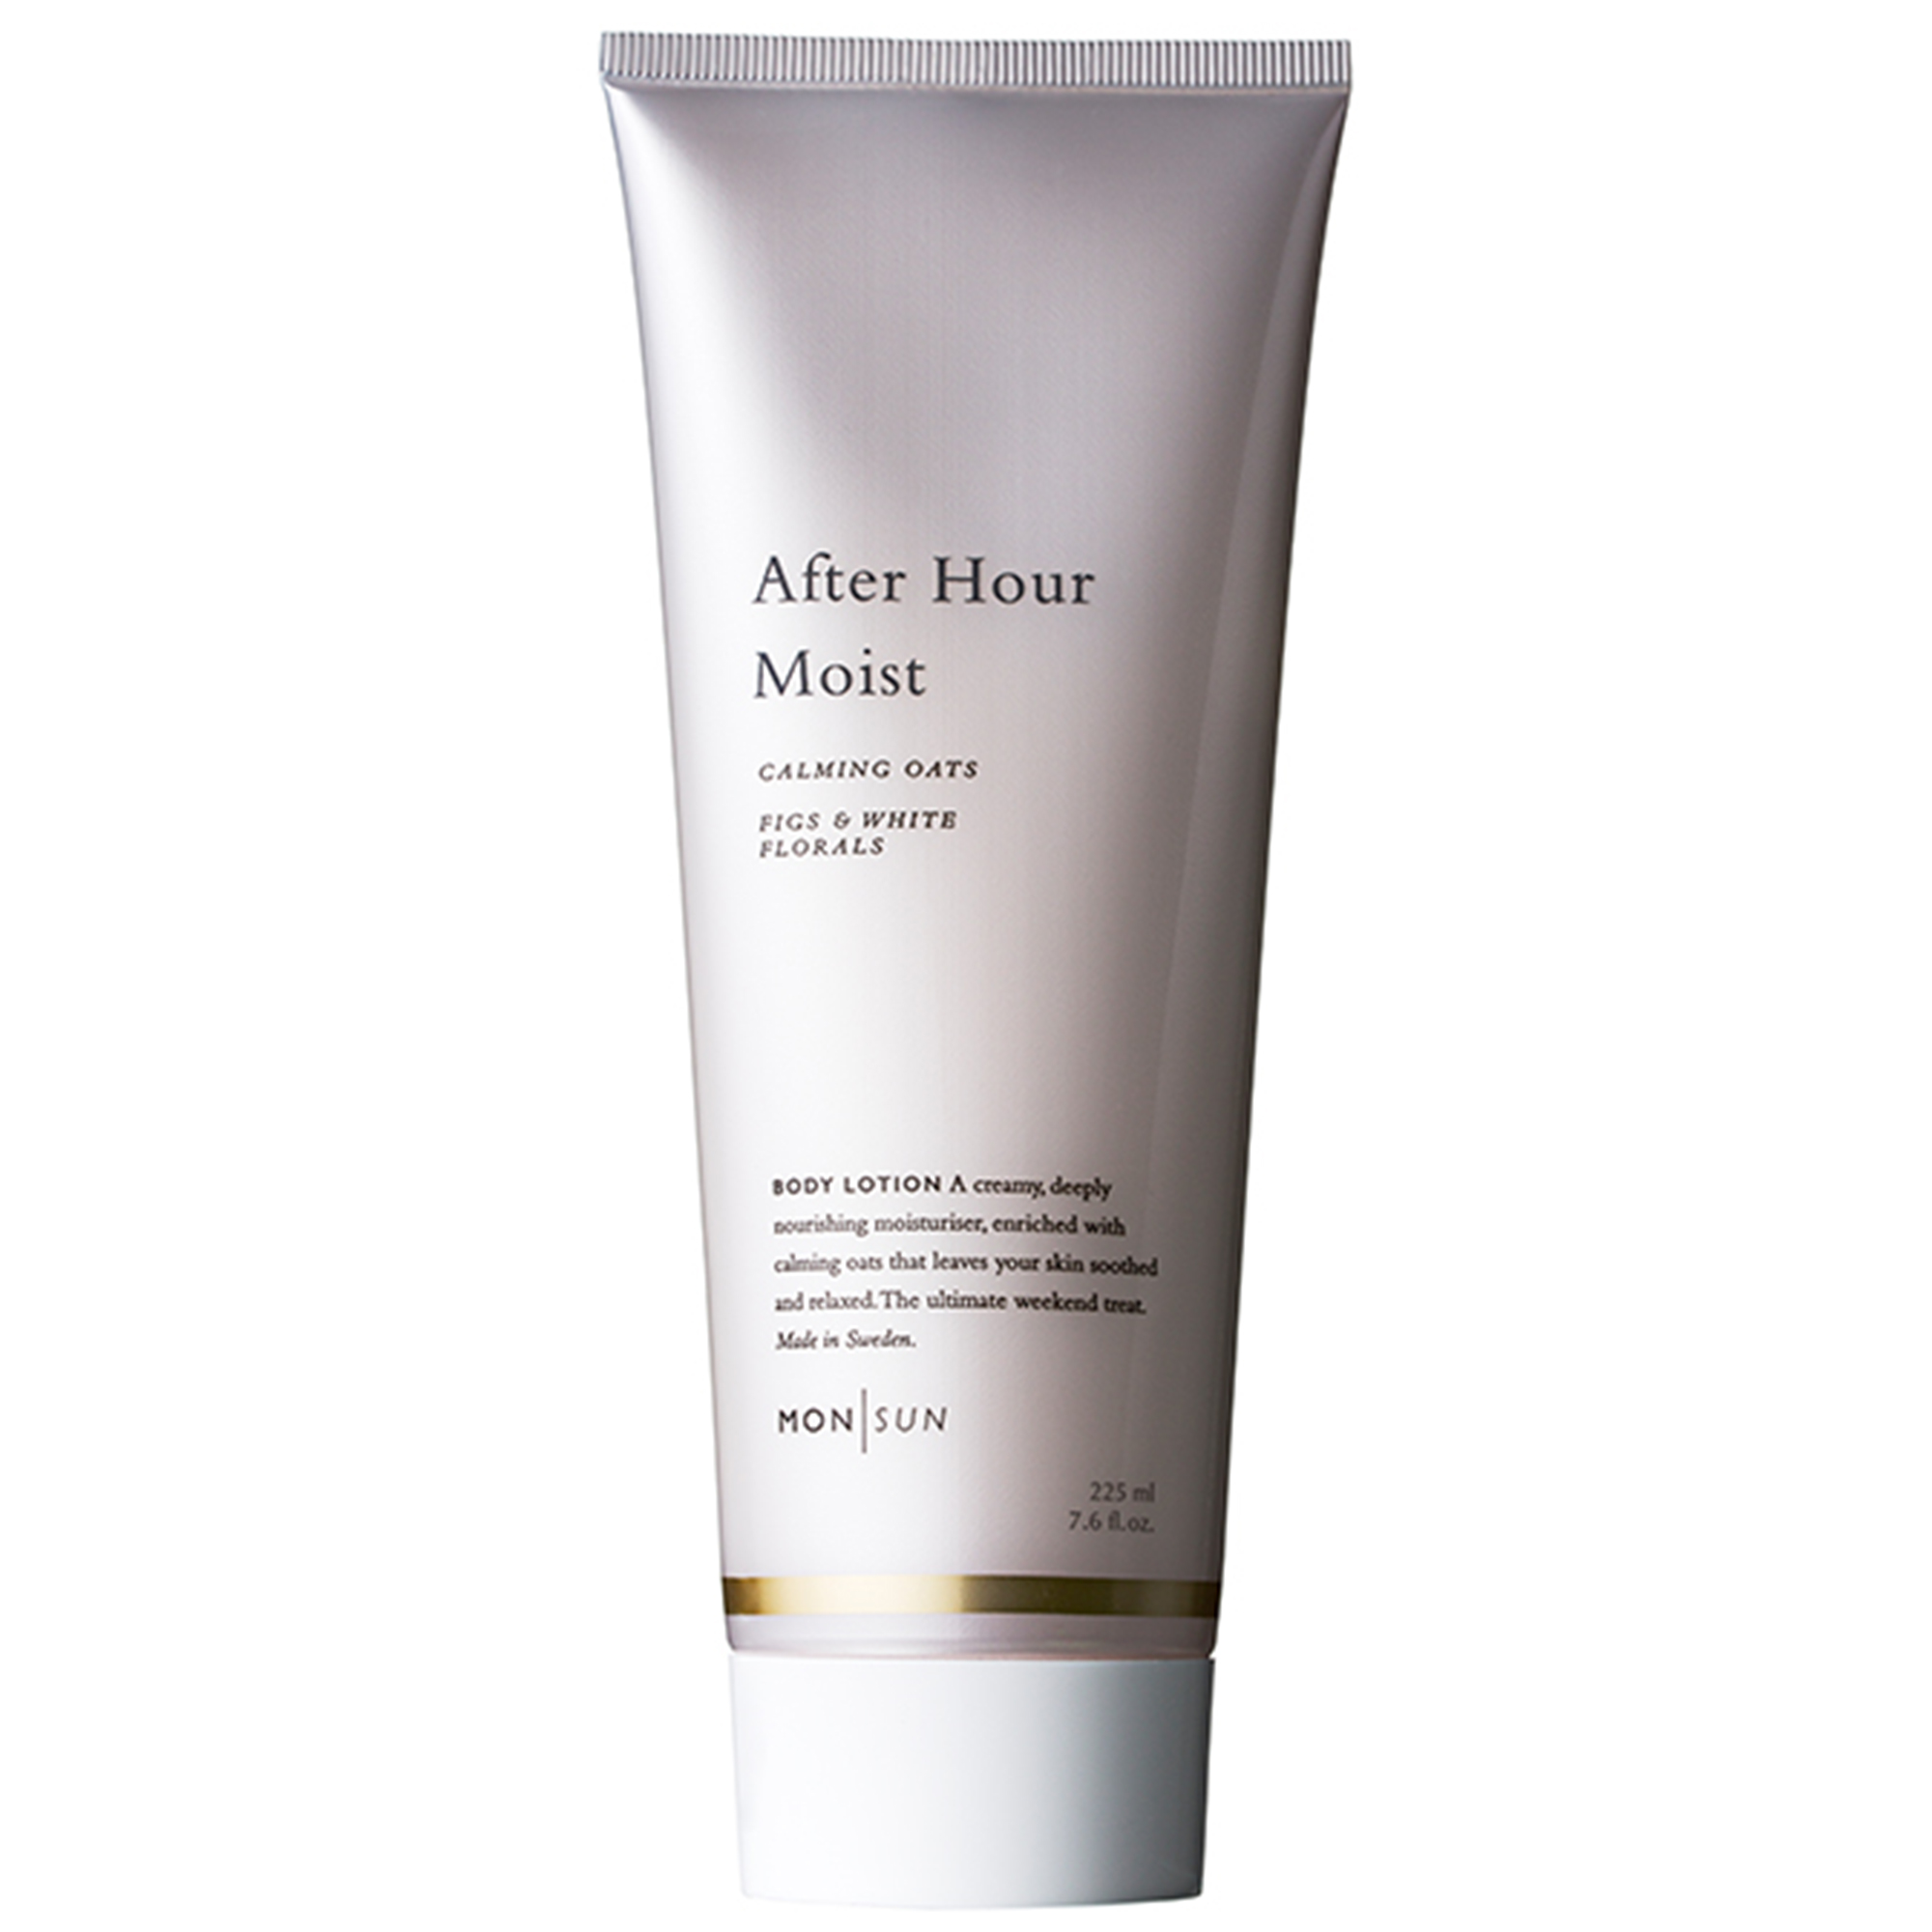 After Hour Moist Calming Oats Body Lotion 225ml